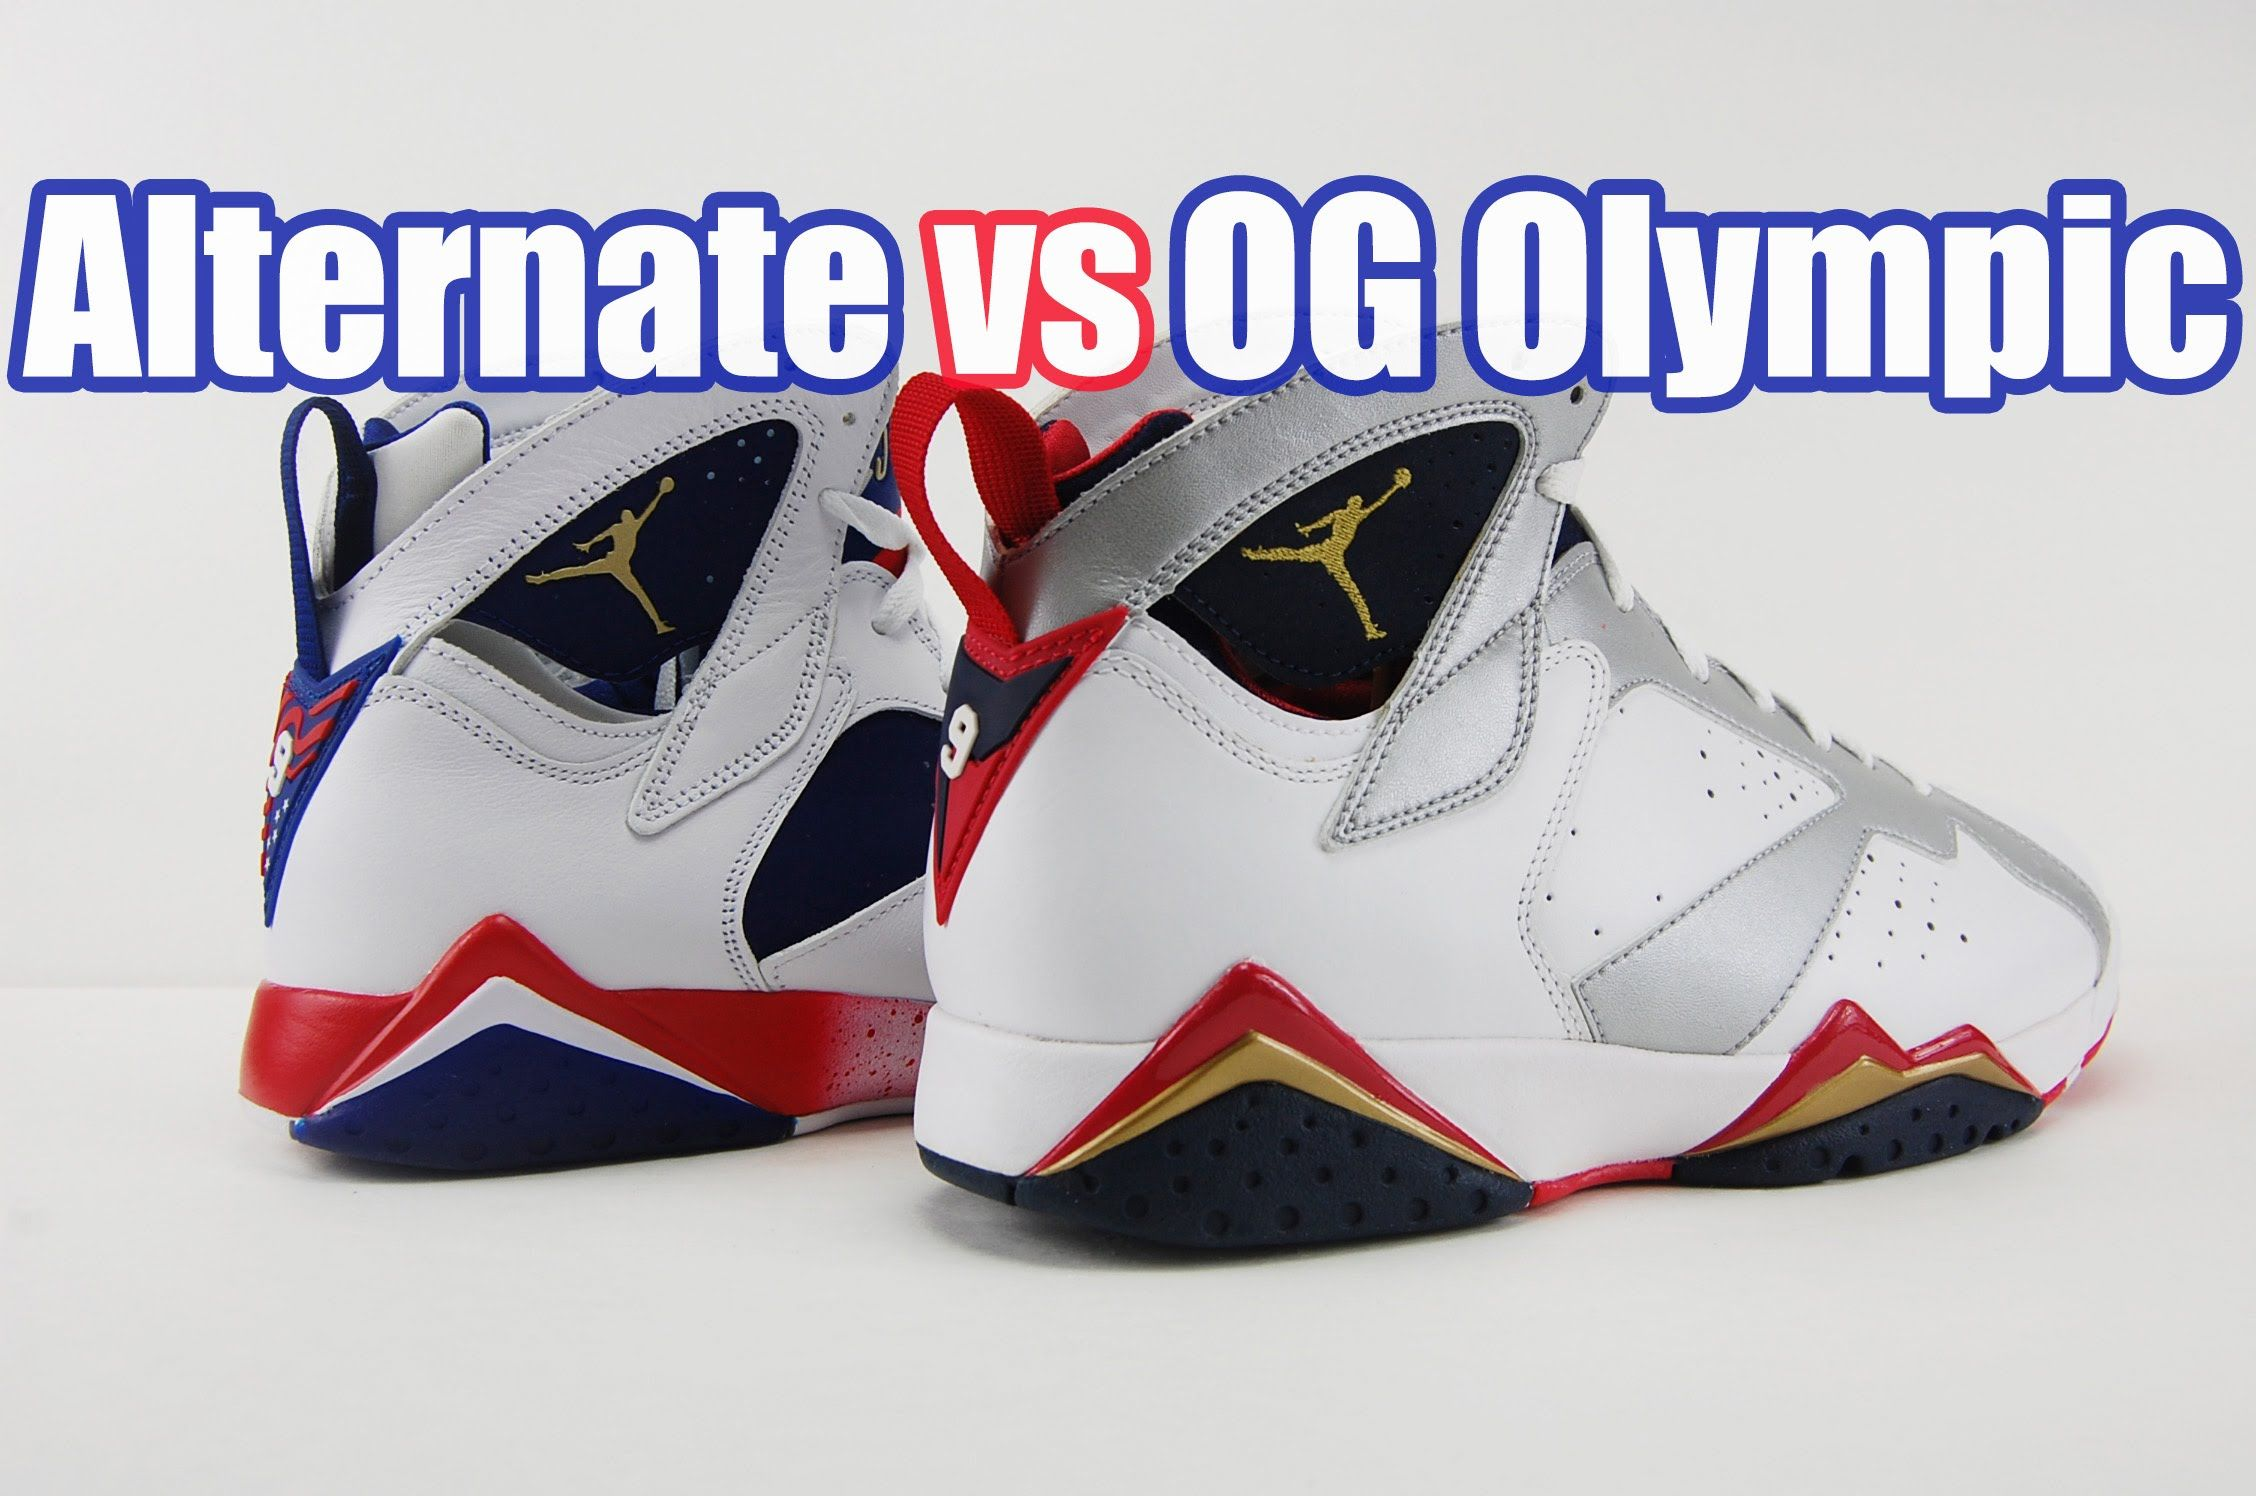 Air Jordan 7 Réelle Vs Yeezys Faux Olympic